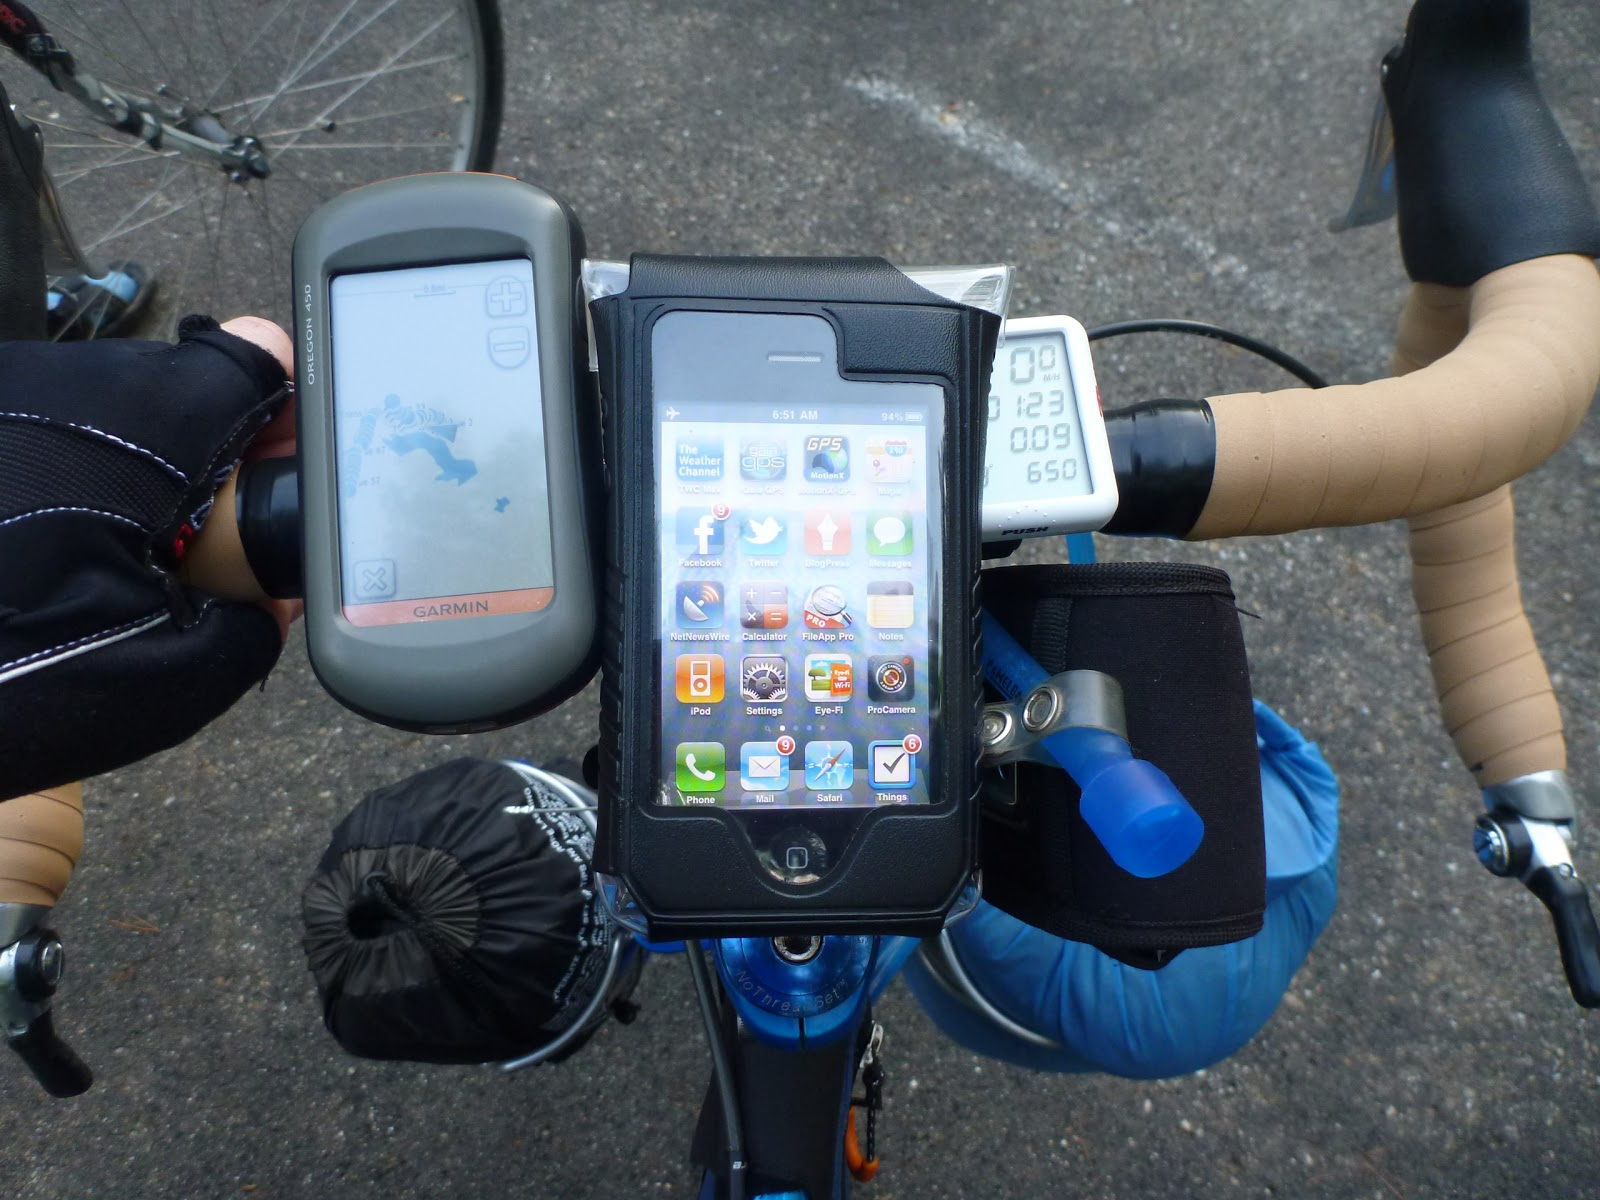 i will be the first to admit that i brought way too many electronics on this trip you can see in this photo the garmin oregon 450 gps unit my iphone 3gs